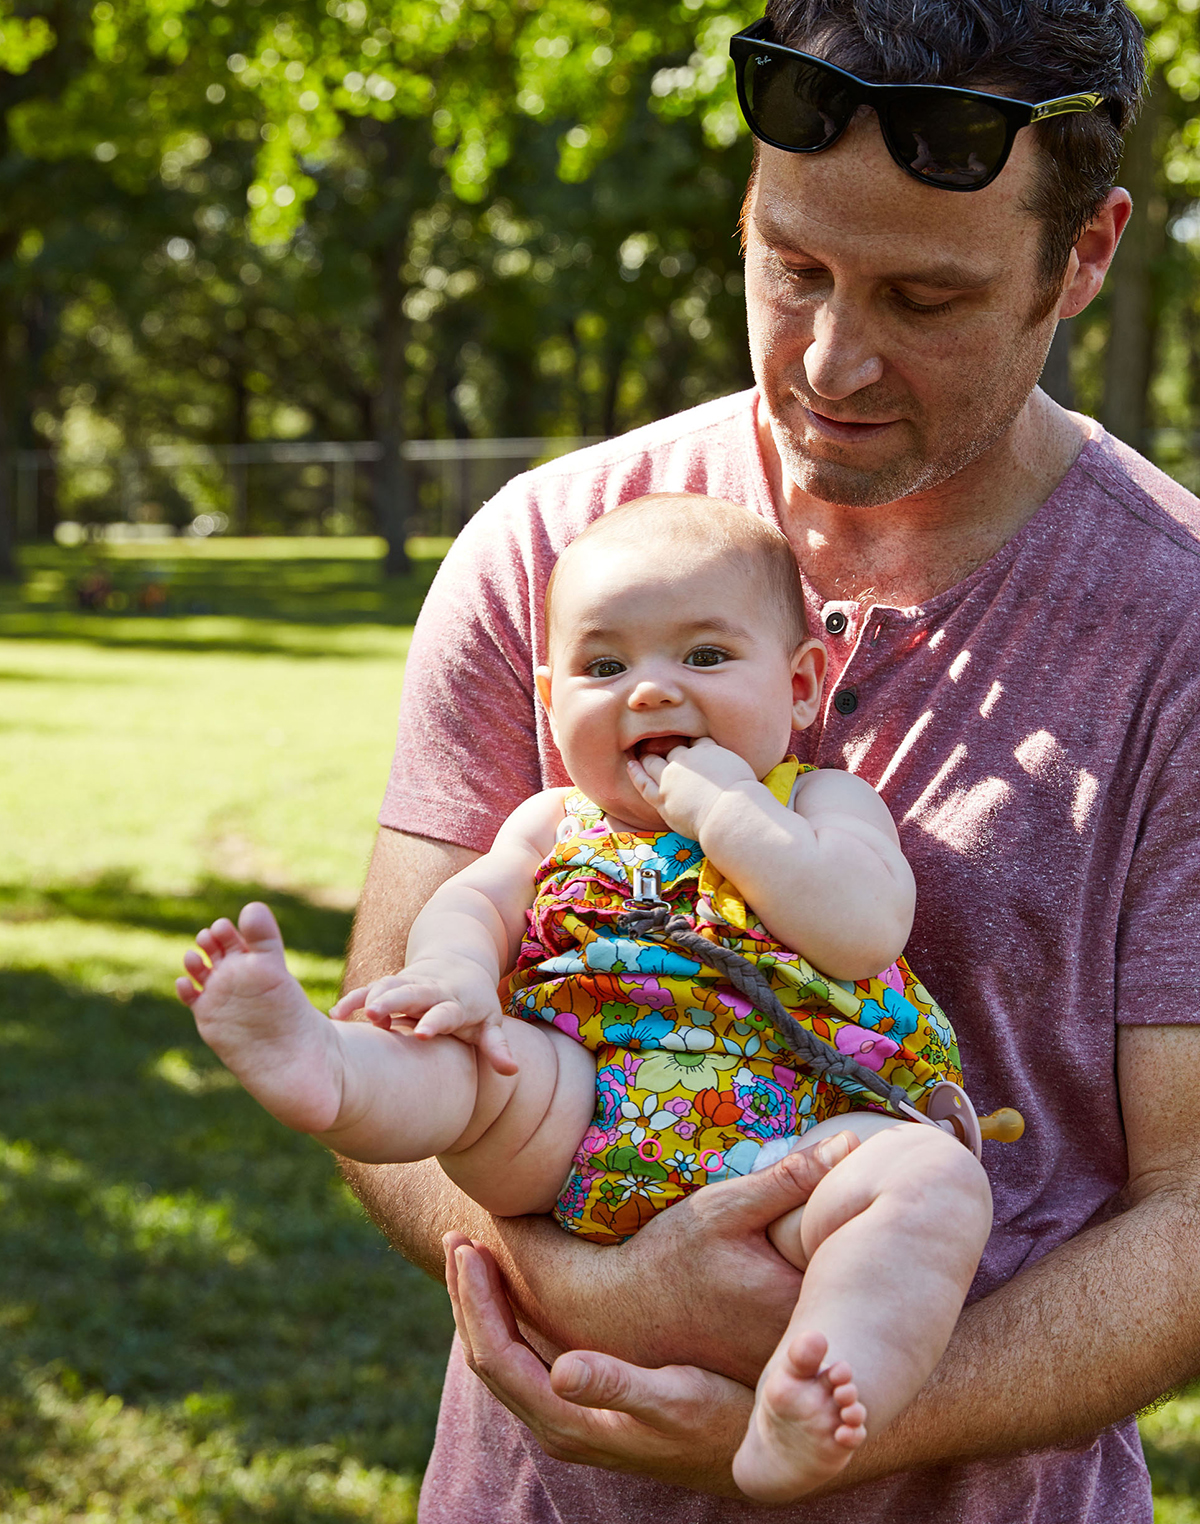 dad holding baby wearing floral print outfit outside